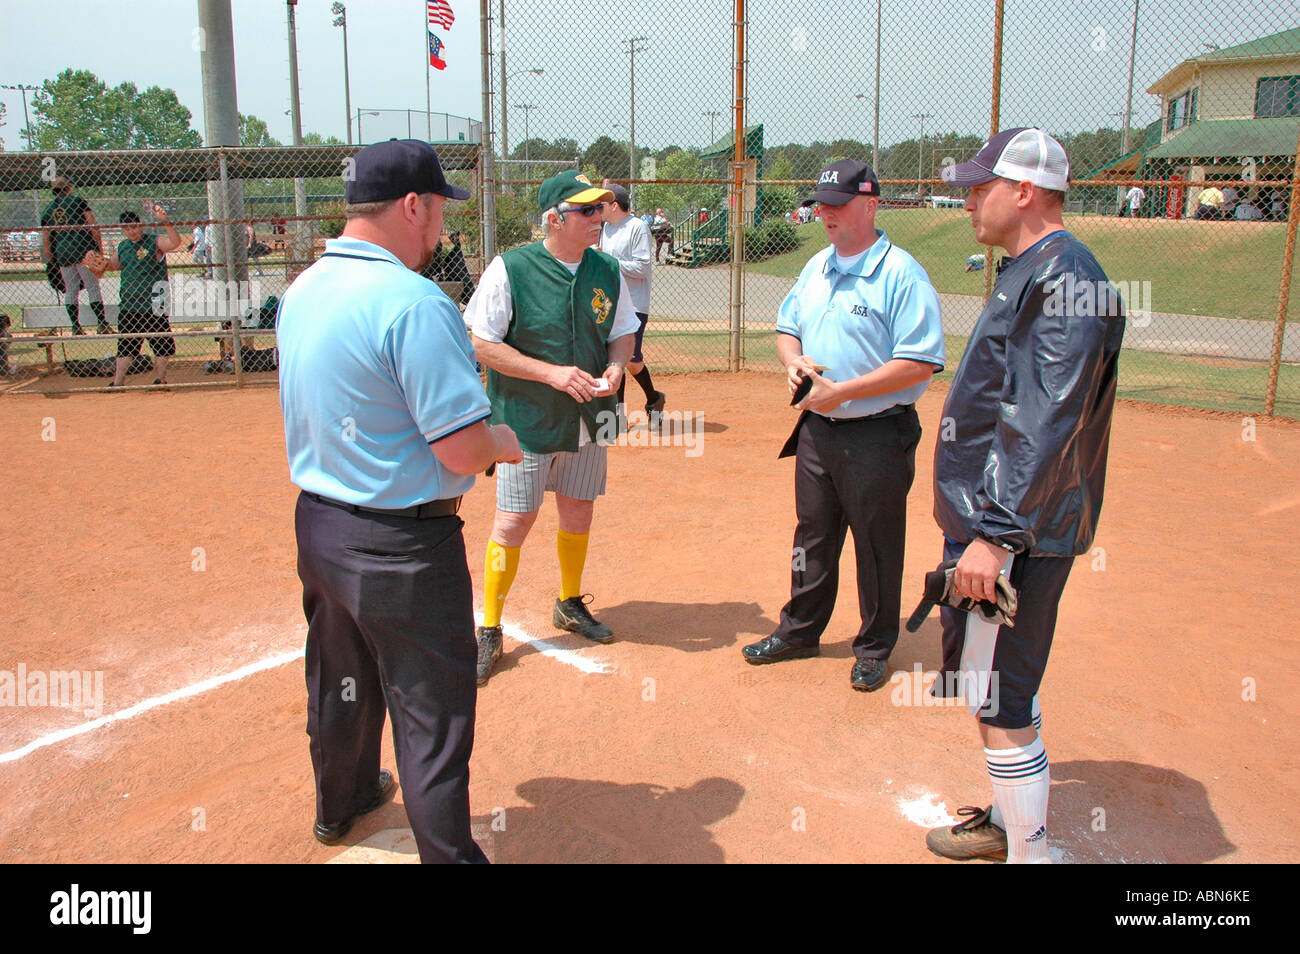 softball umpires for ASA in the US during games and in preganme